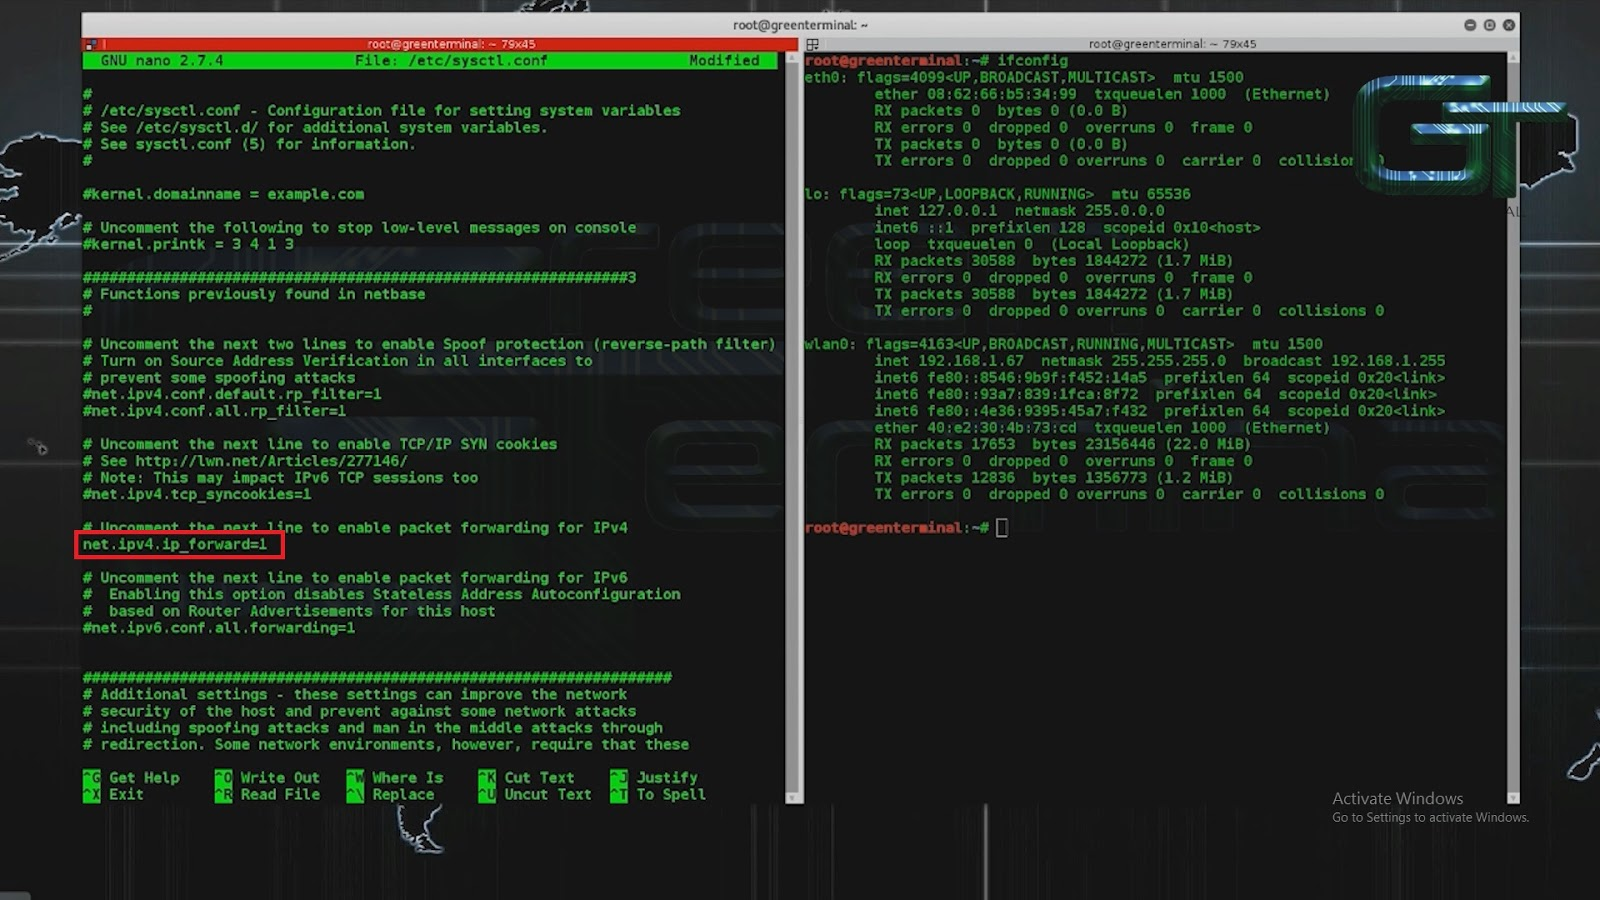 Unable to start server with either ipv4 or ipv6 exiting